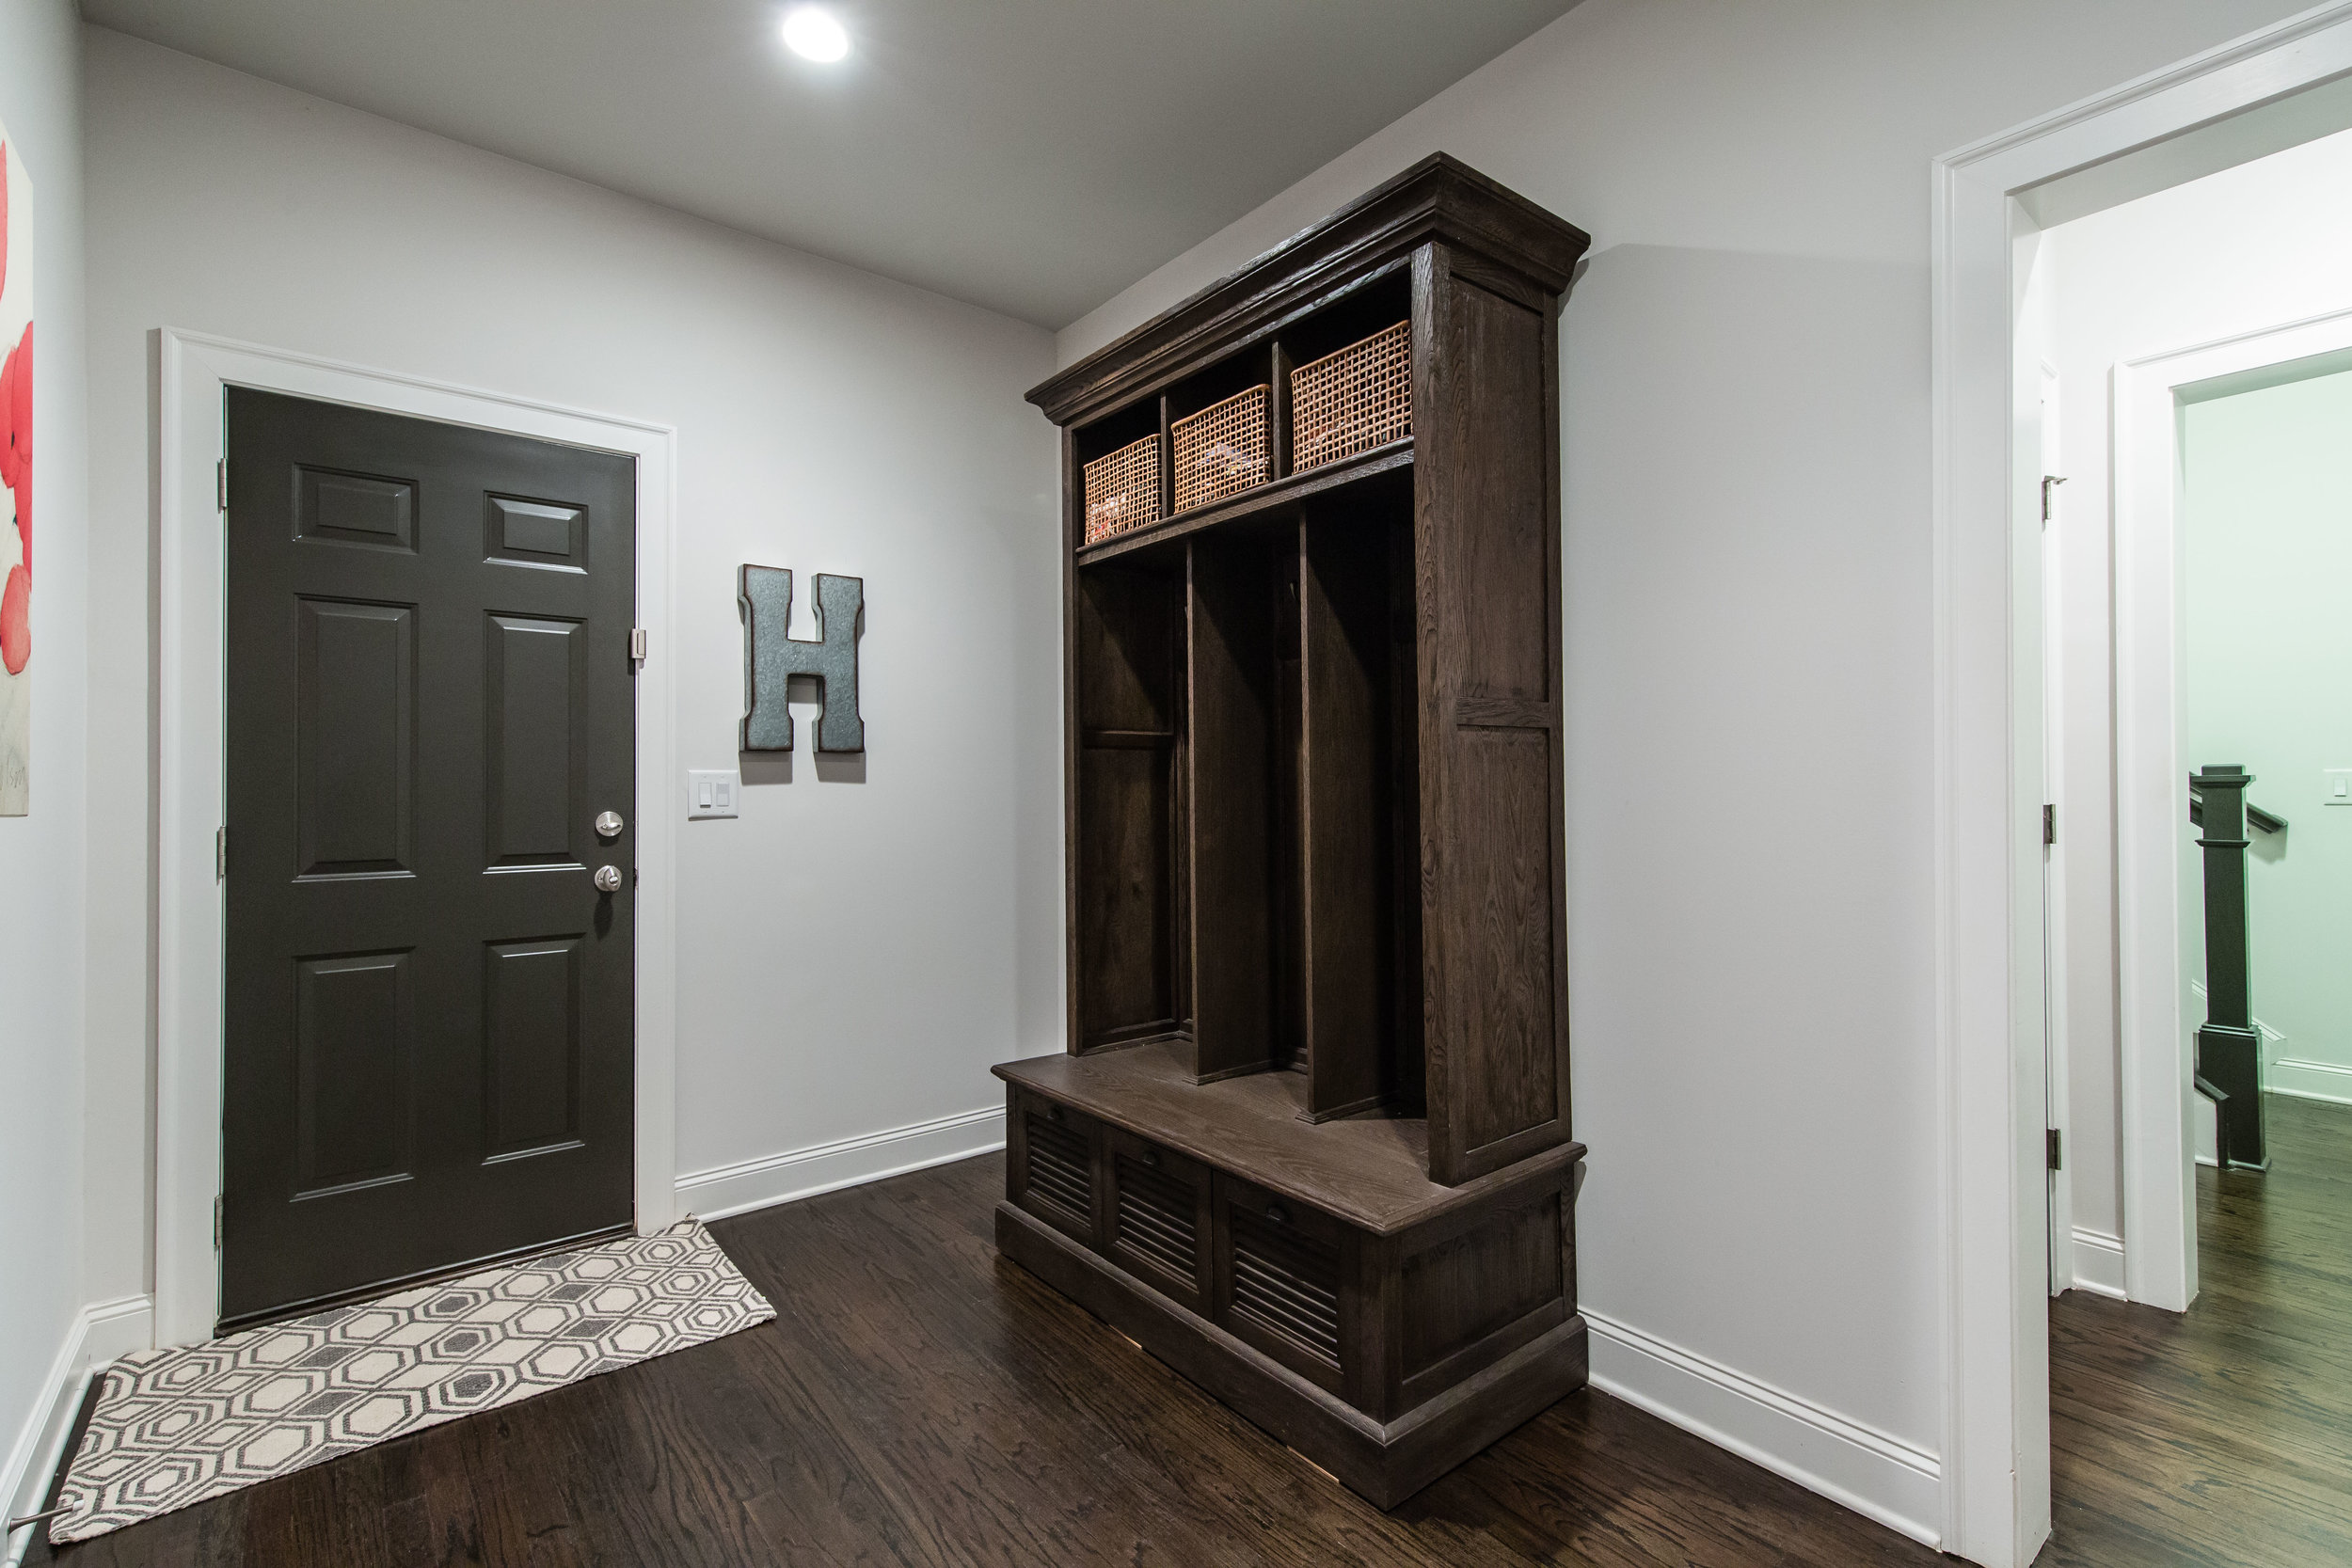 900 S Candler-Mudroom.jpg